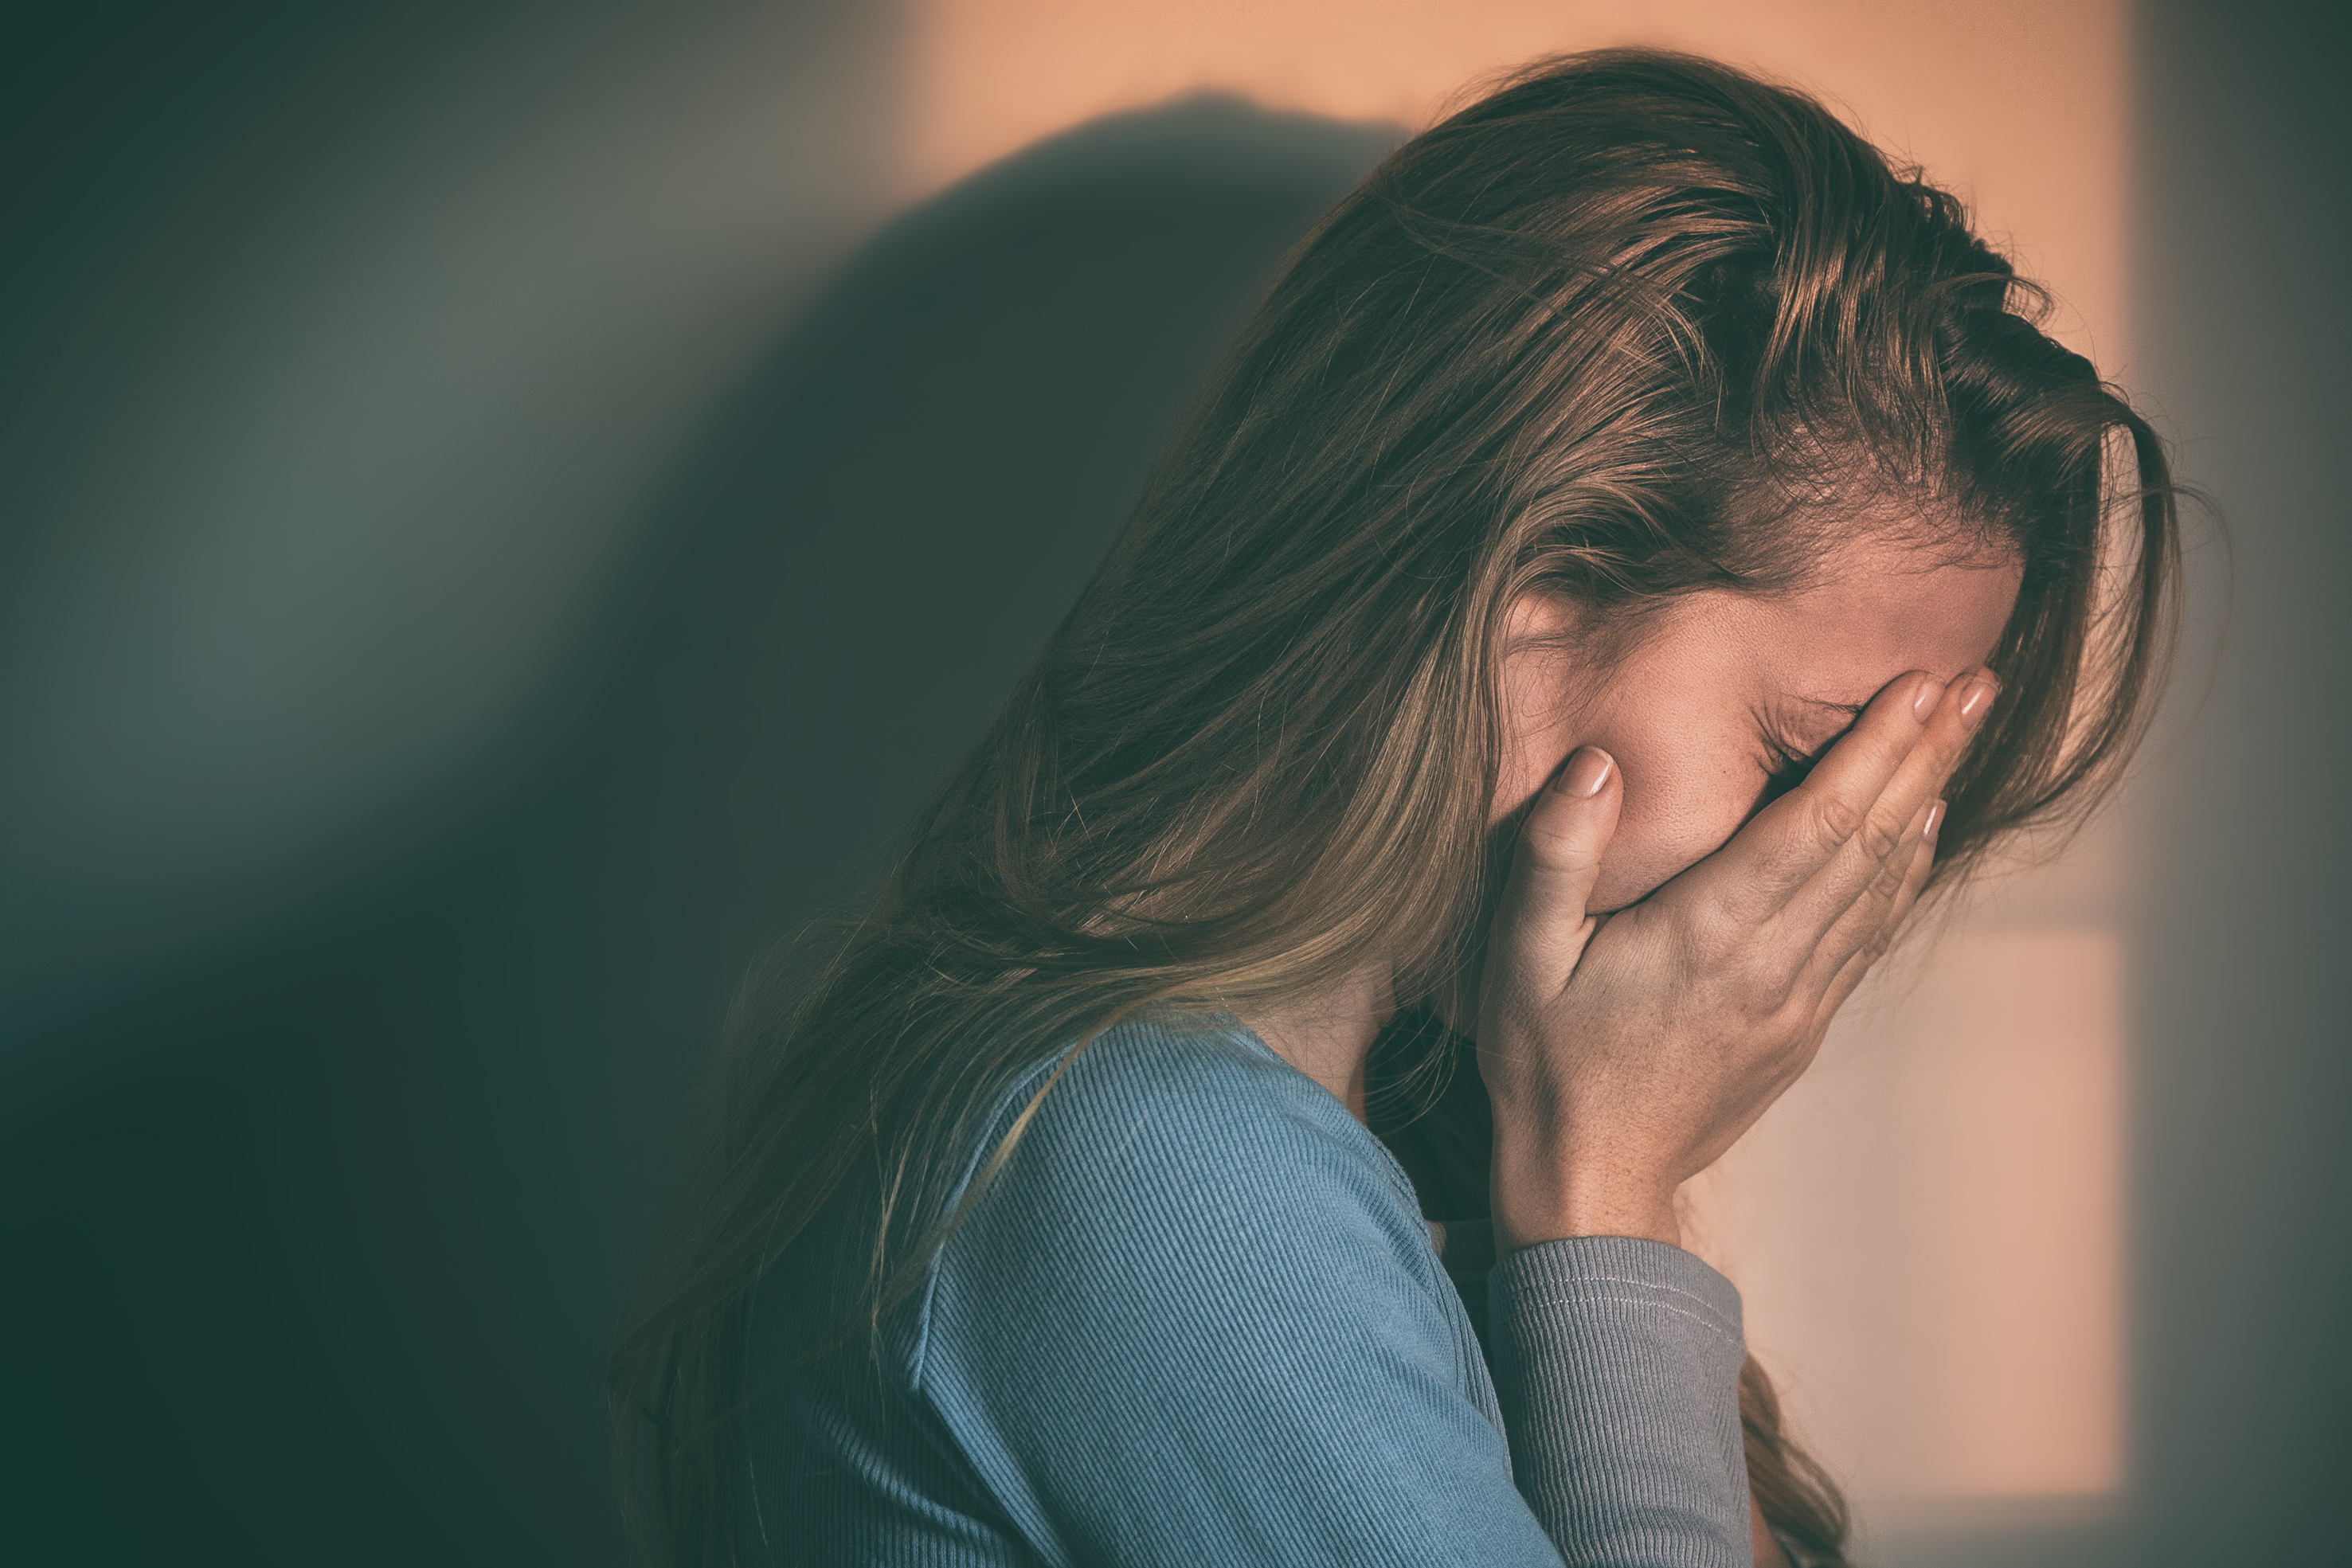 The Shocking Truth About Psychiatrists Treatment of People With Mental Illness